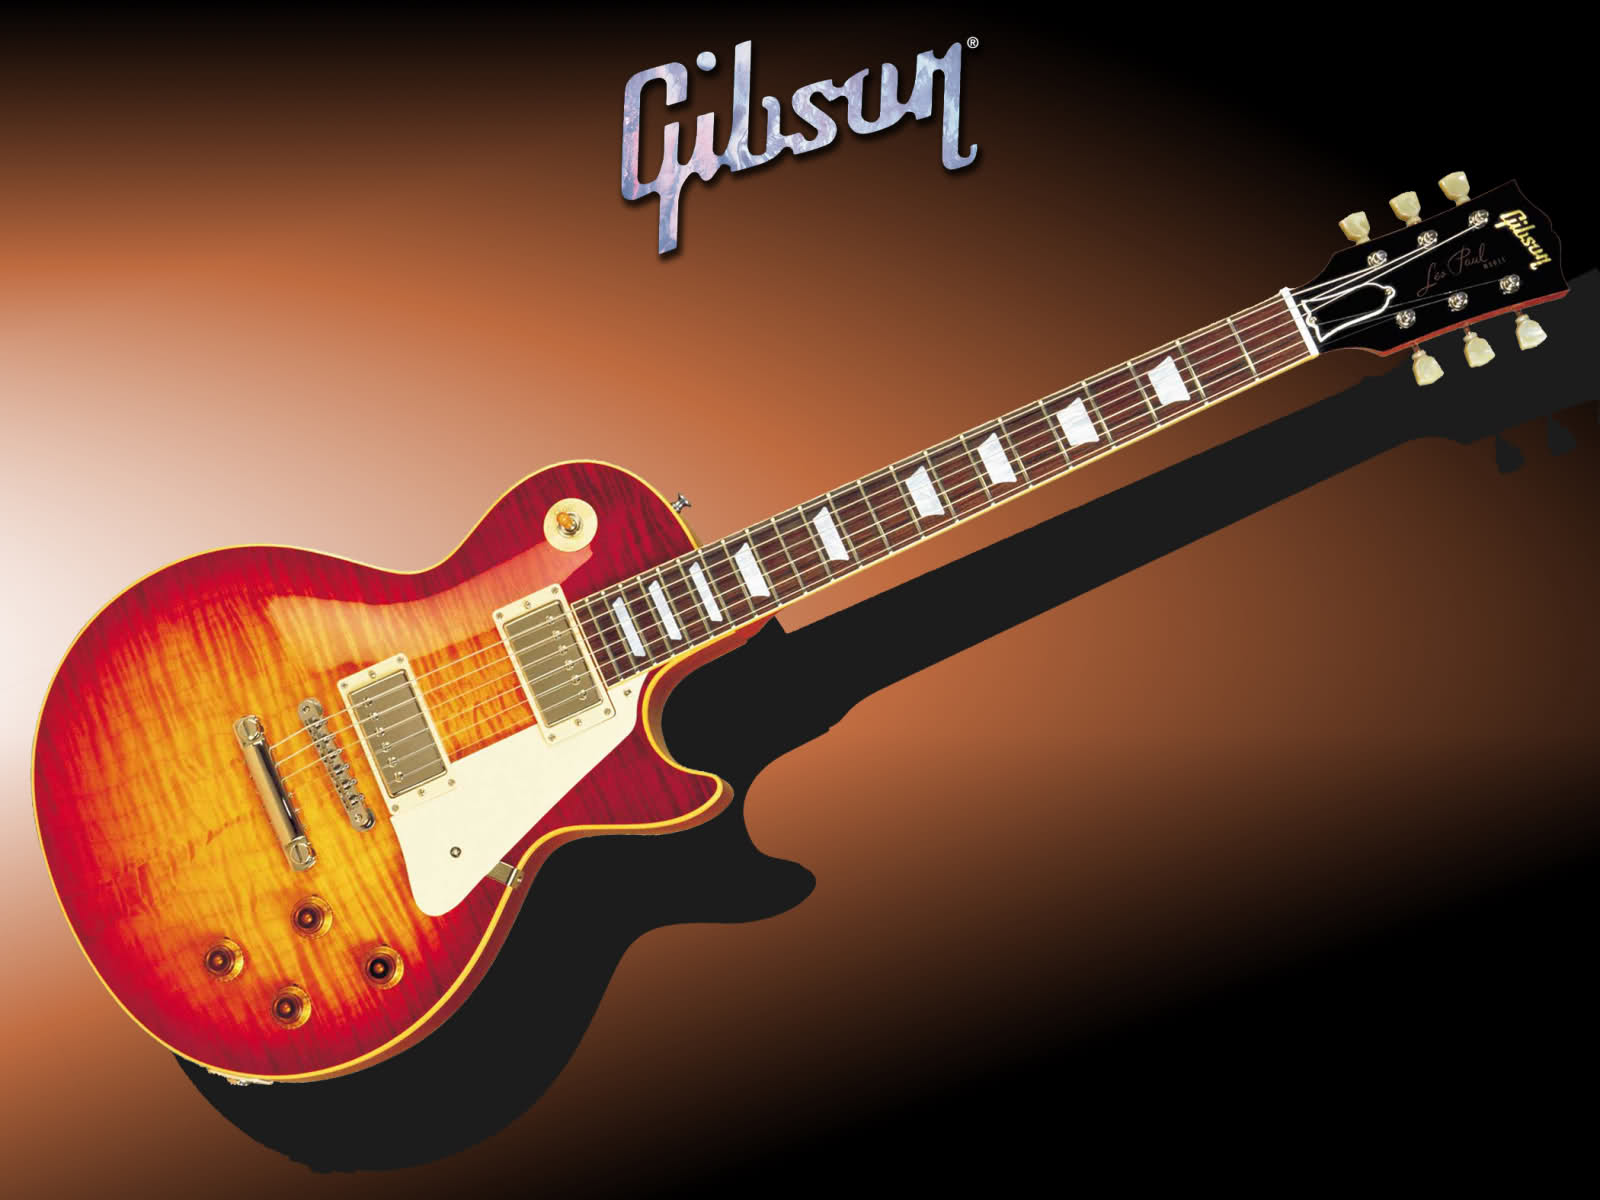 gibson guitar wallpapers free wallpapersafari